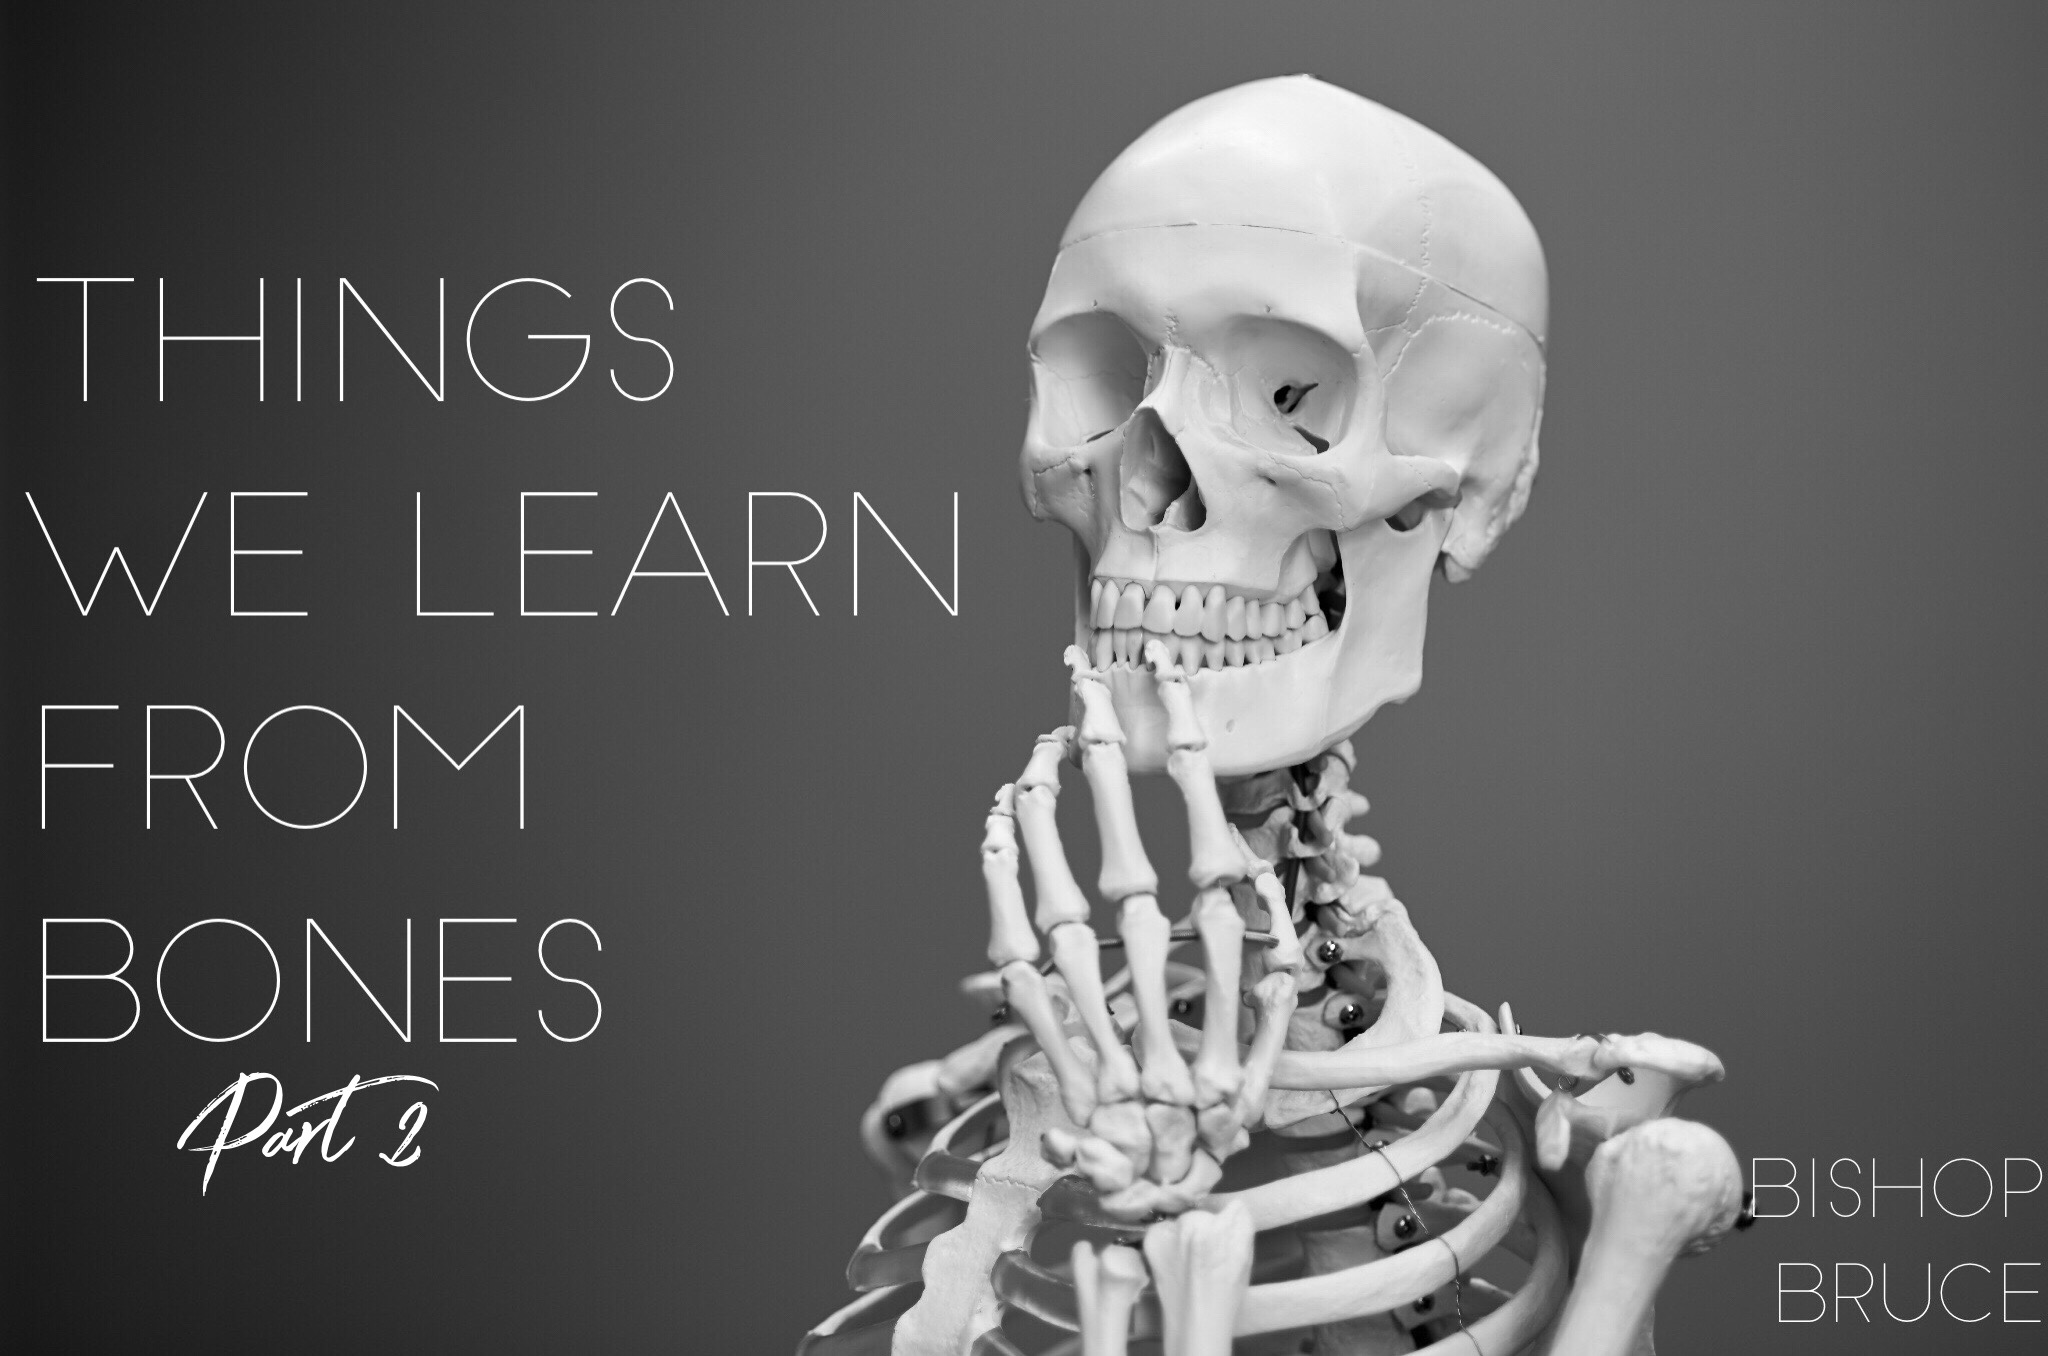 Things We Learn from Bones Pt 2